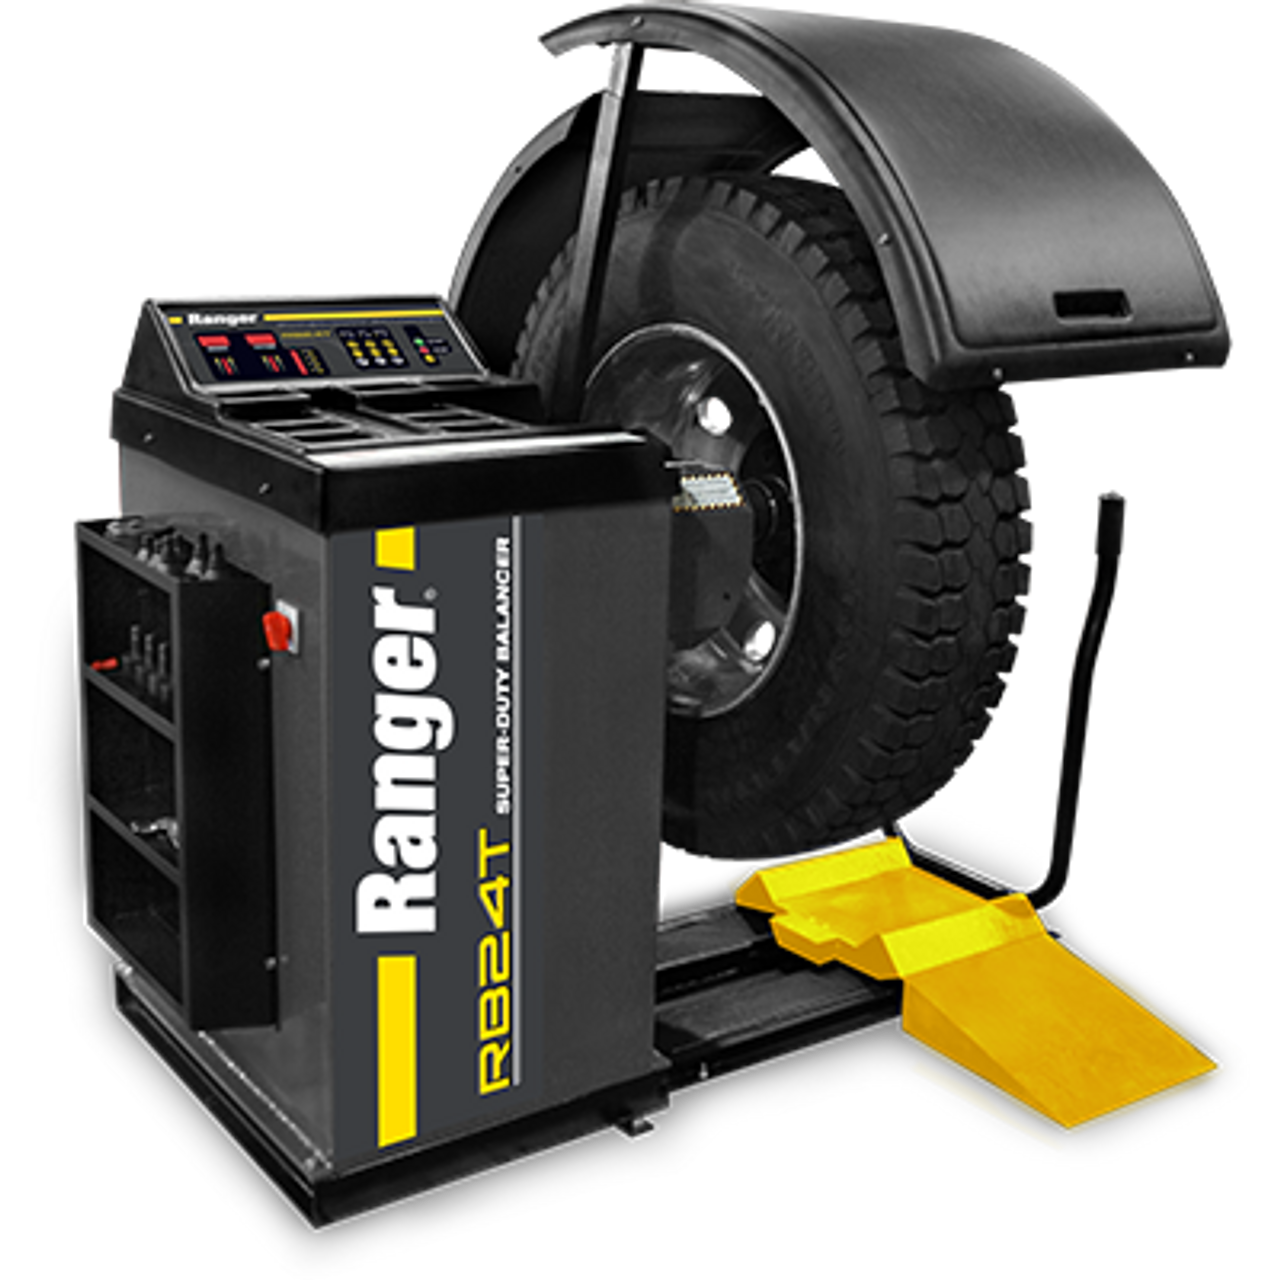 RANGER RB24T SUPER-DUTY TRUCK WHEEL BALANCER WITH Drive‐Check™ Technology